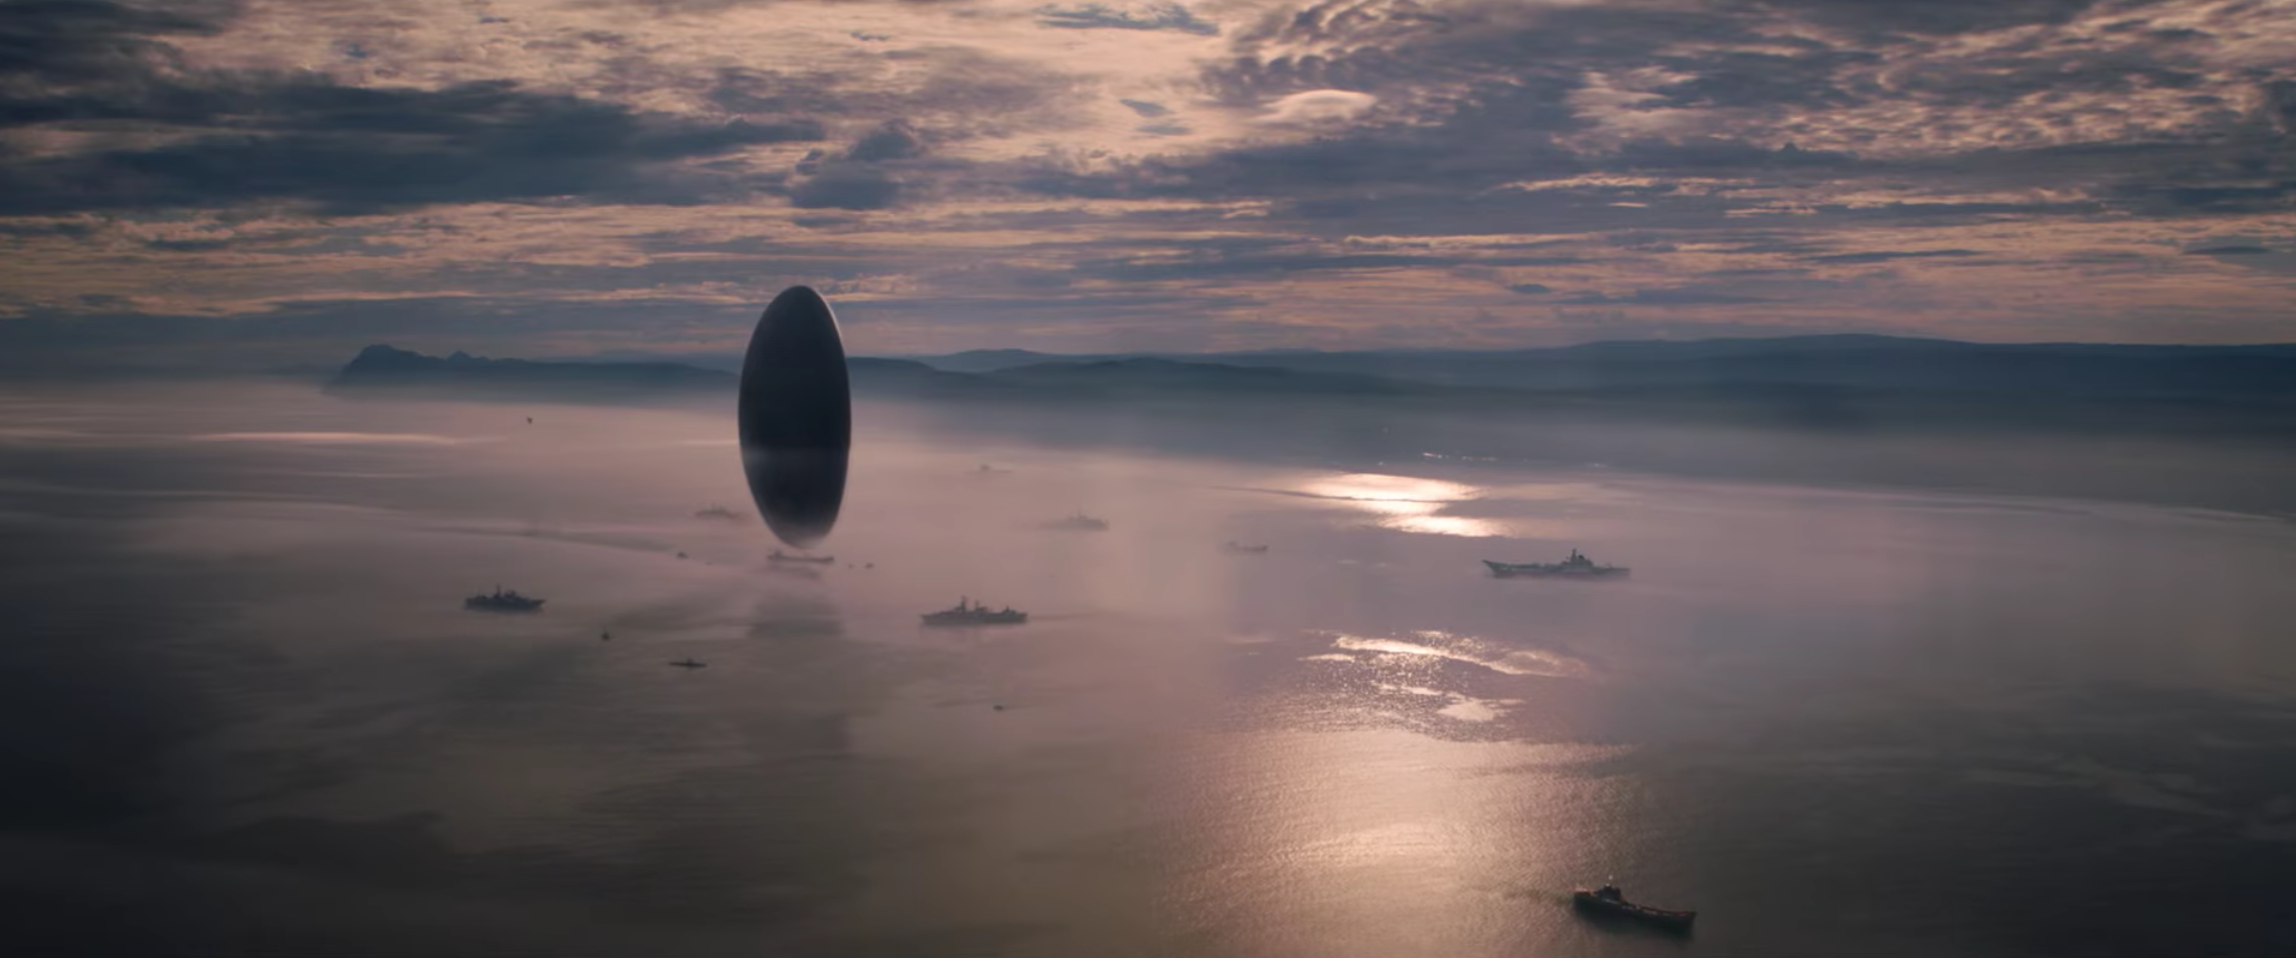 Arrival is a stunning science fiction movie with deep implications arrival buycottarizona